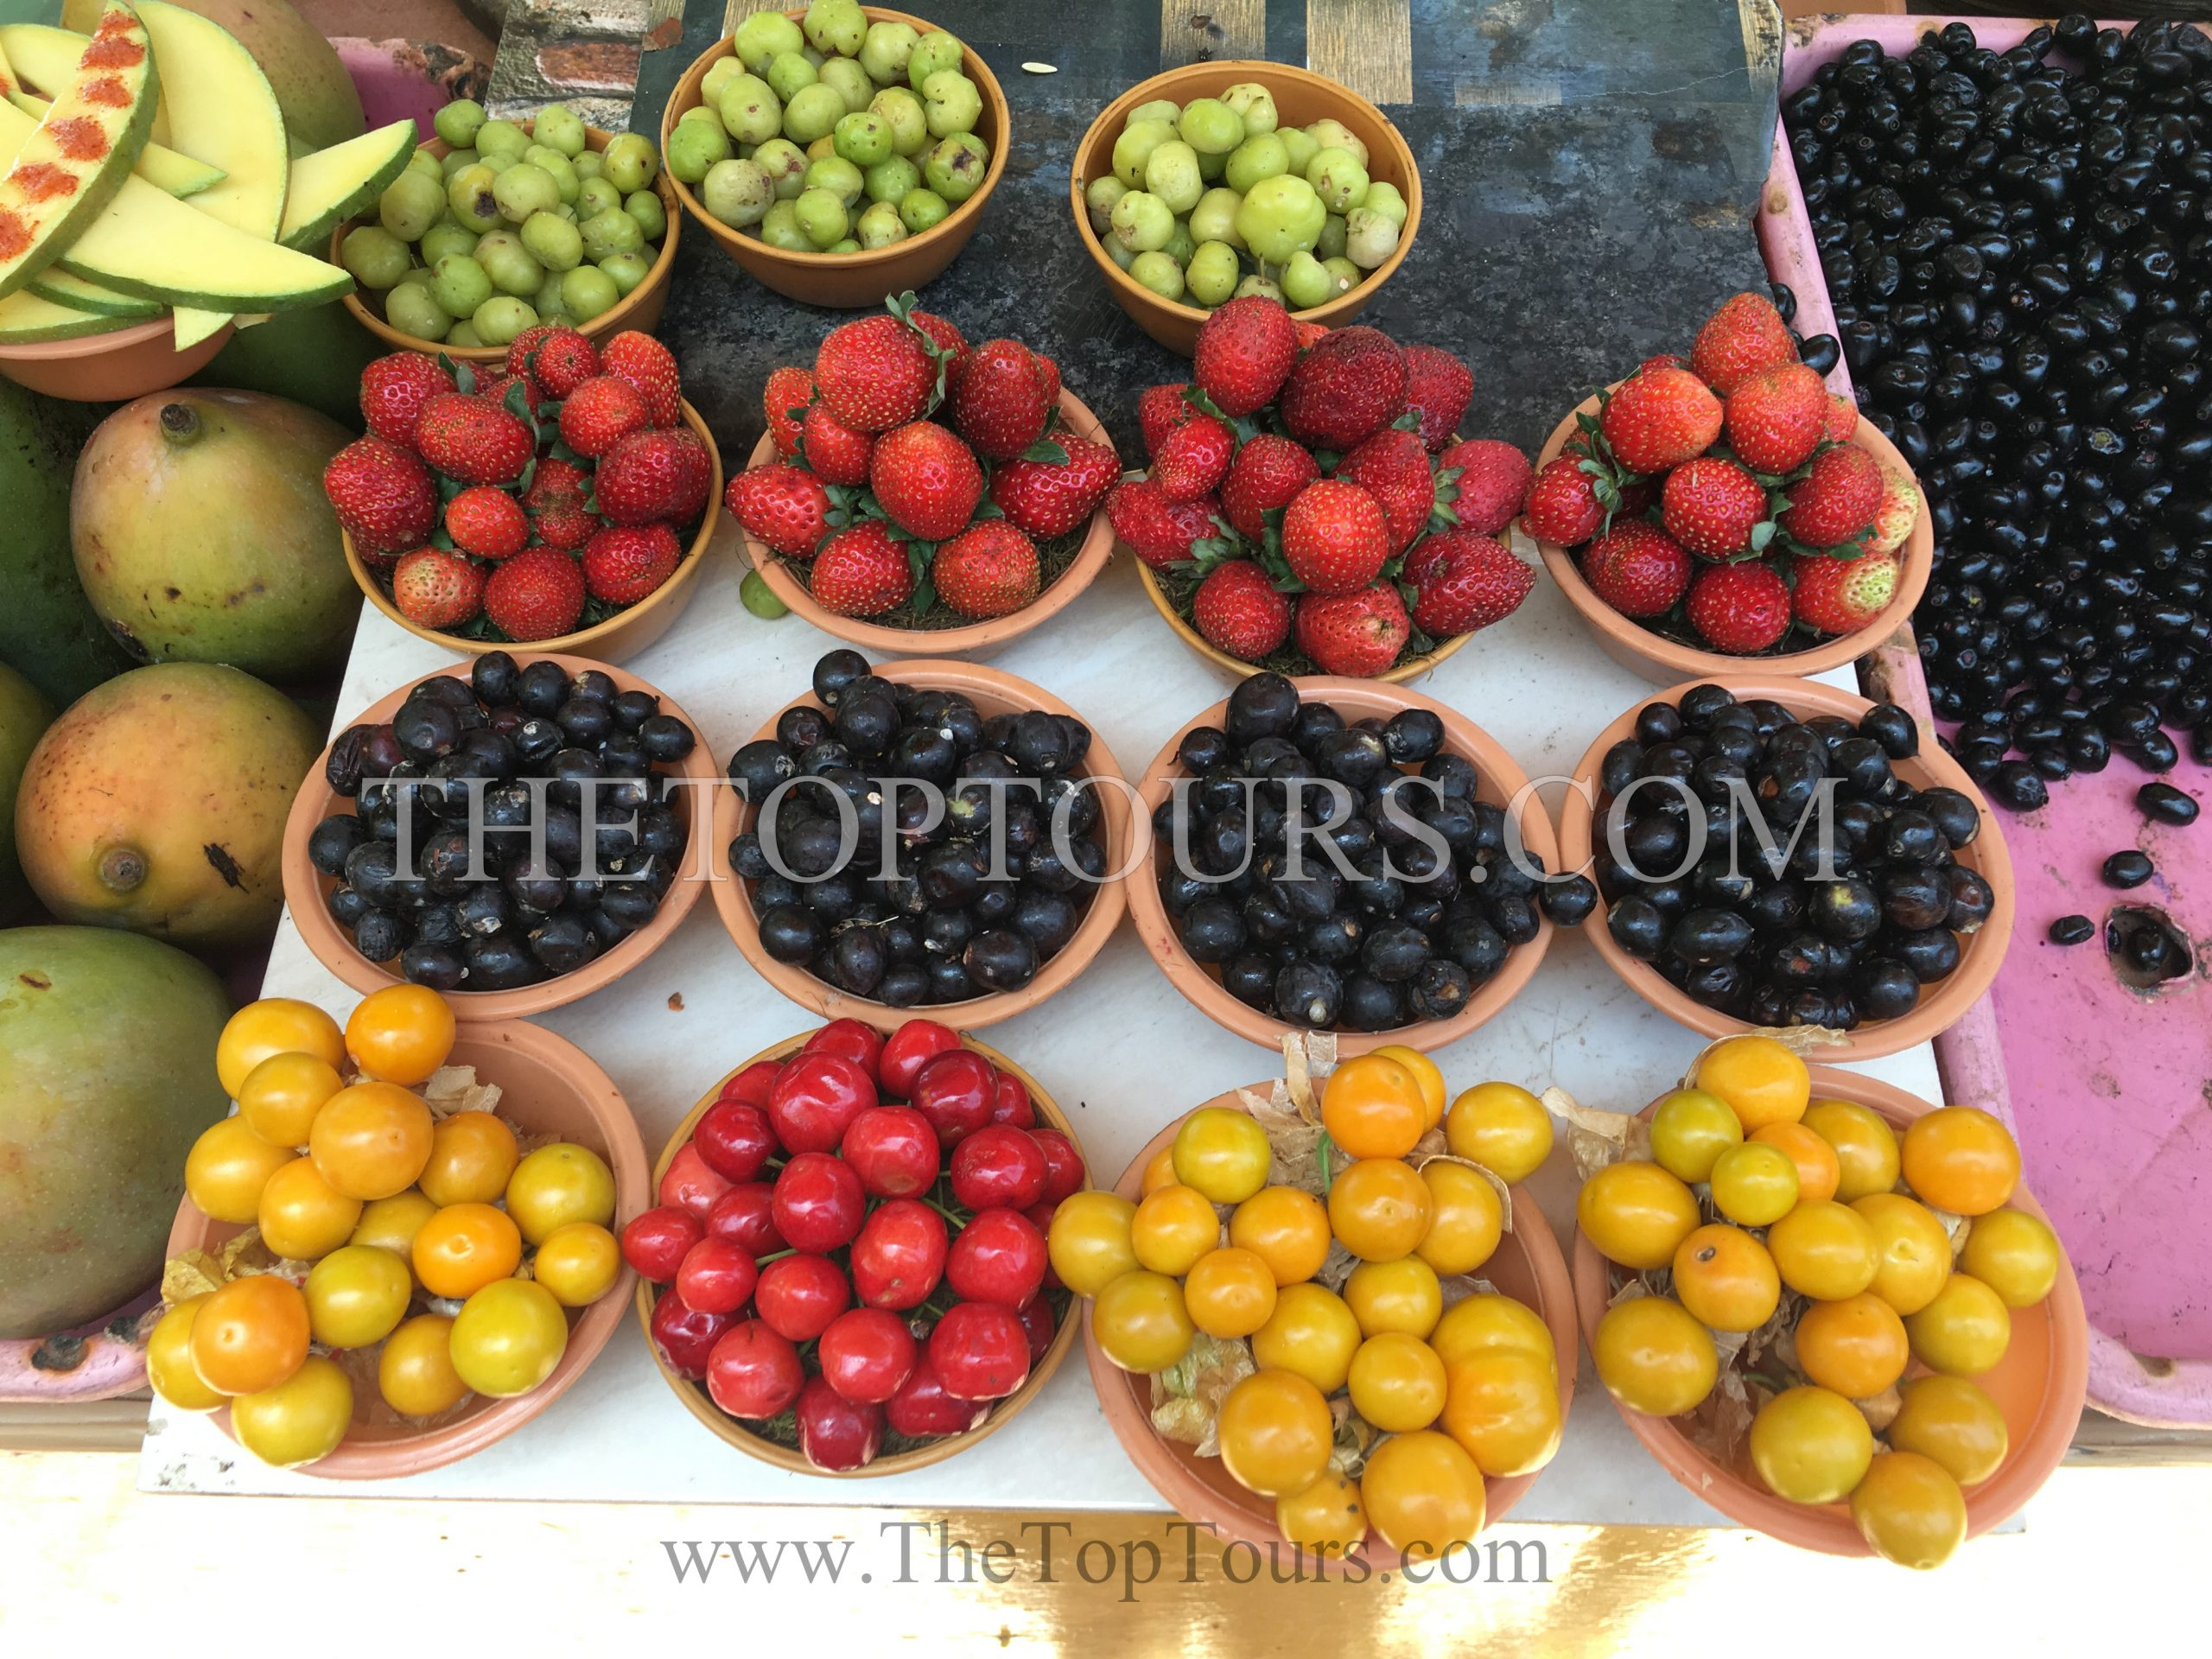 Famous Places To Shop And Things To Buy In Mahabaleshwar